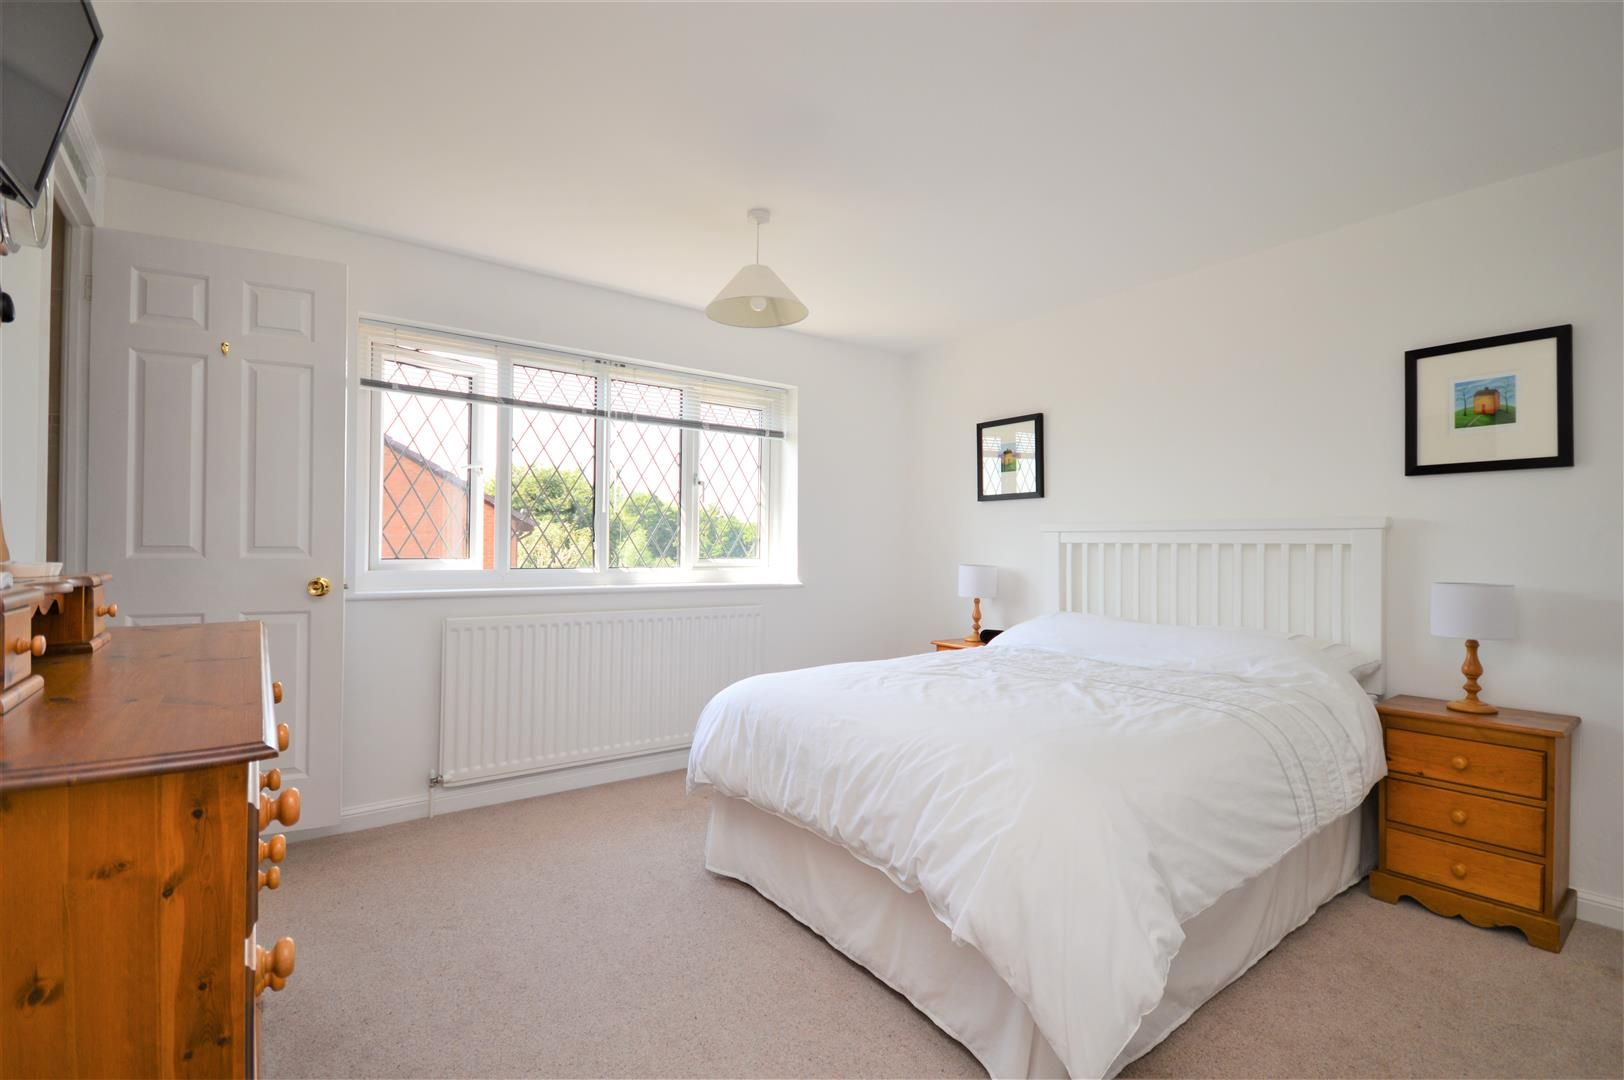 4 bed detached for sale in Hereford 8